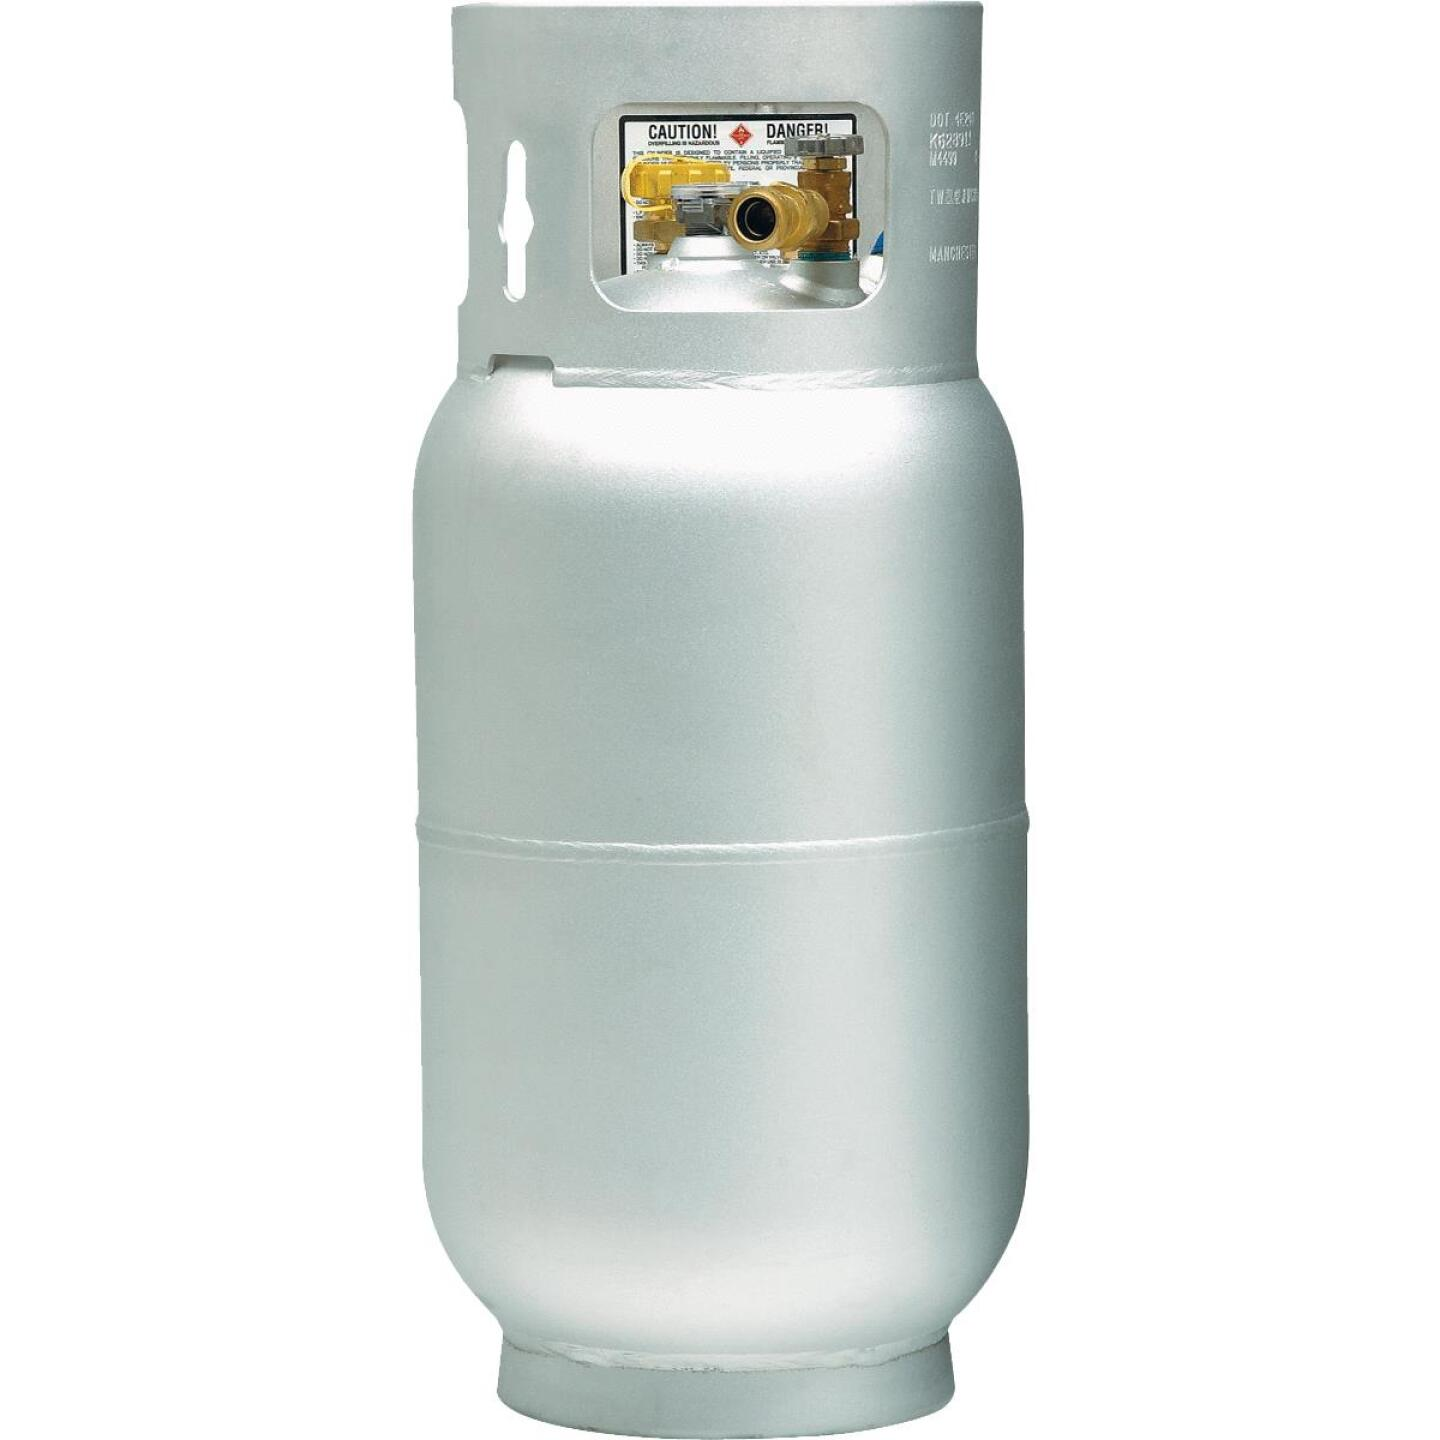 Manchester Tank and Equipment 33.5 Lb. Capacity Aluminum DOT Forklift LP Propane Cylinder Image 1